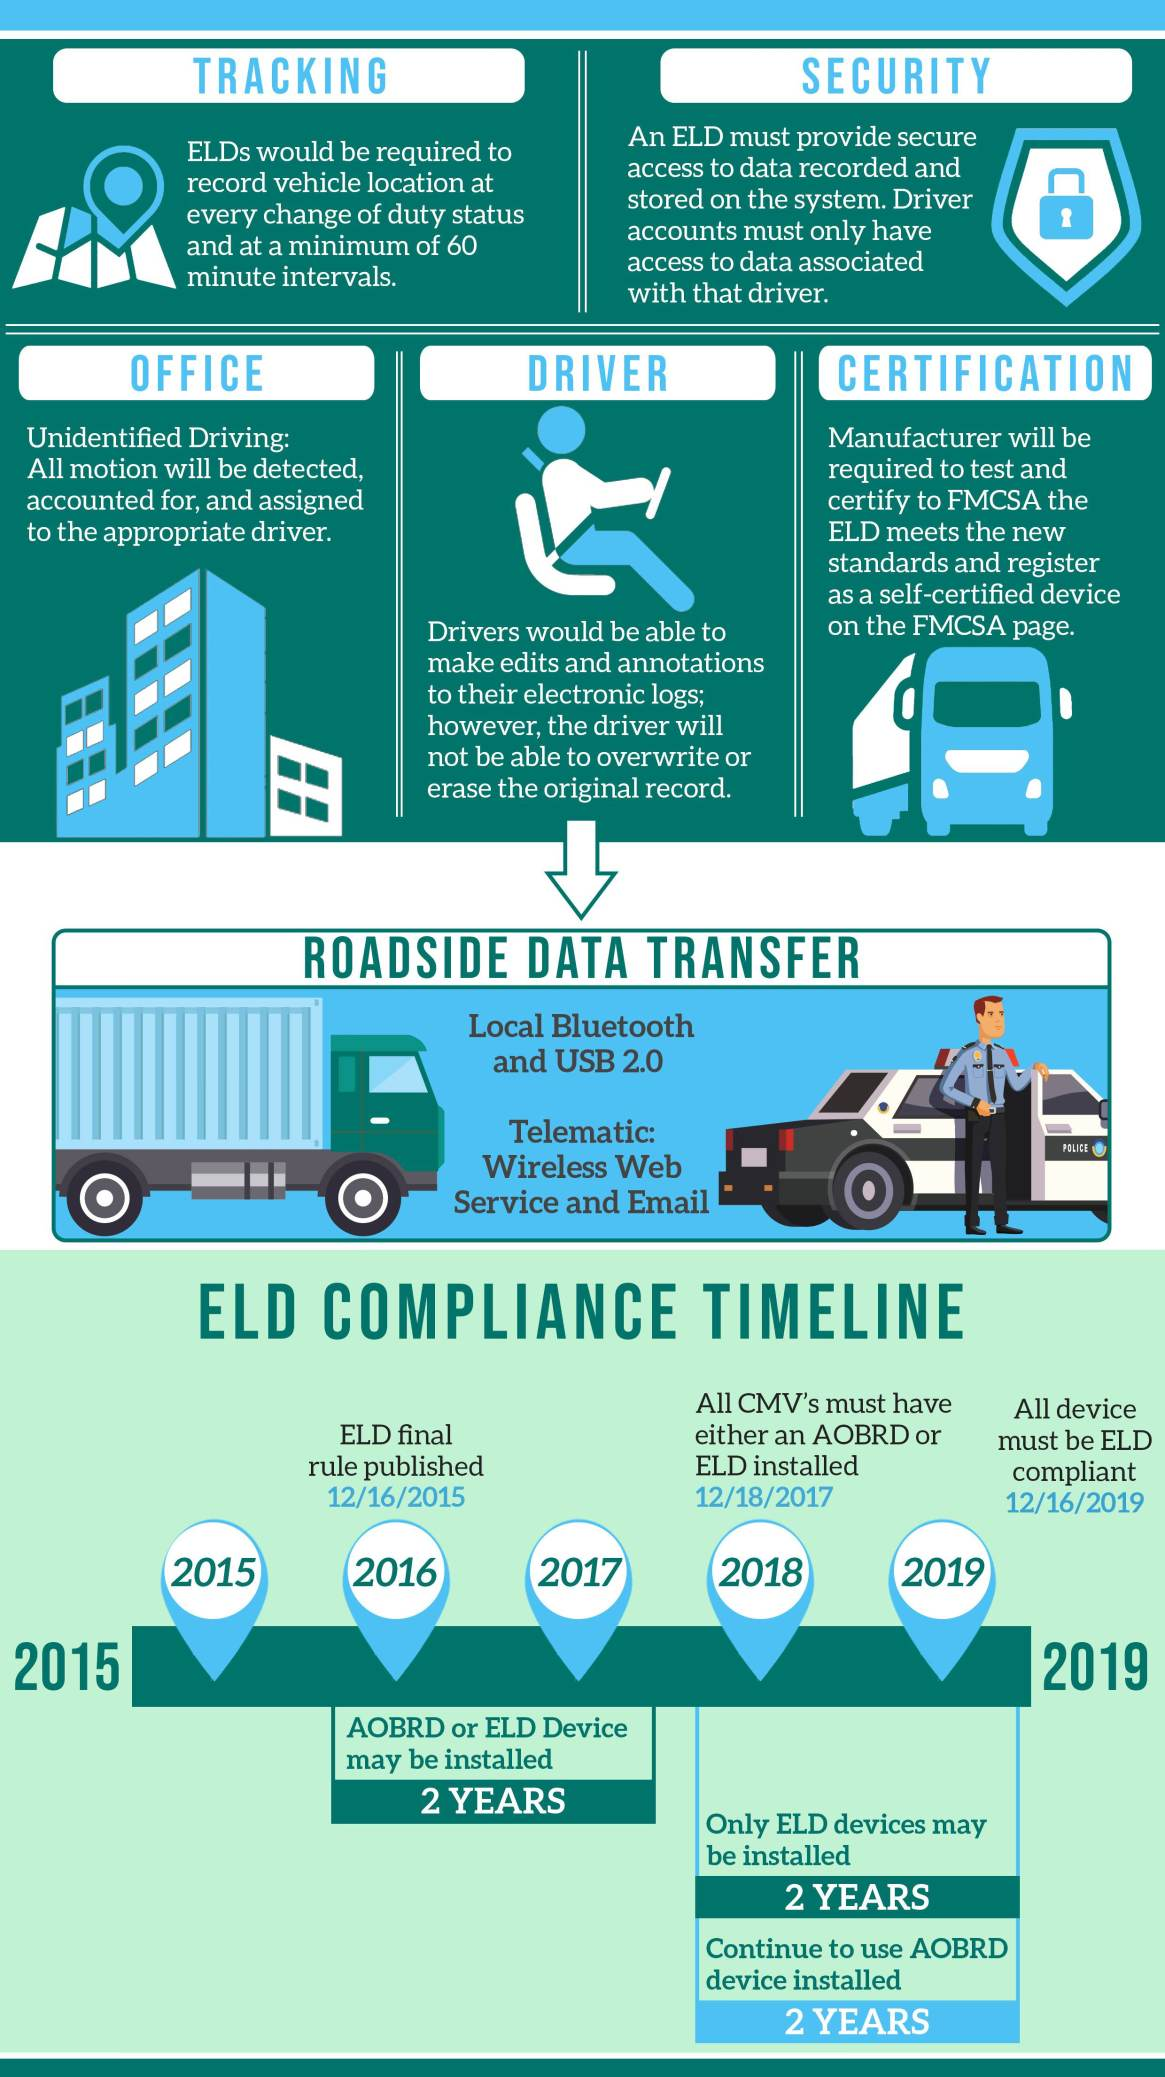 ELD Compliance Timeline – What's the Industry's Future?